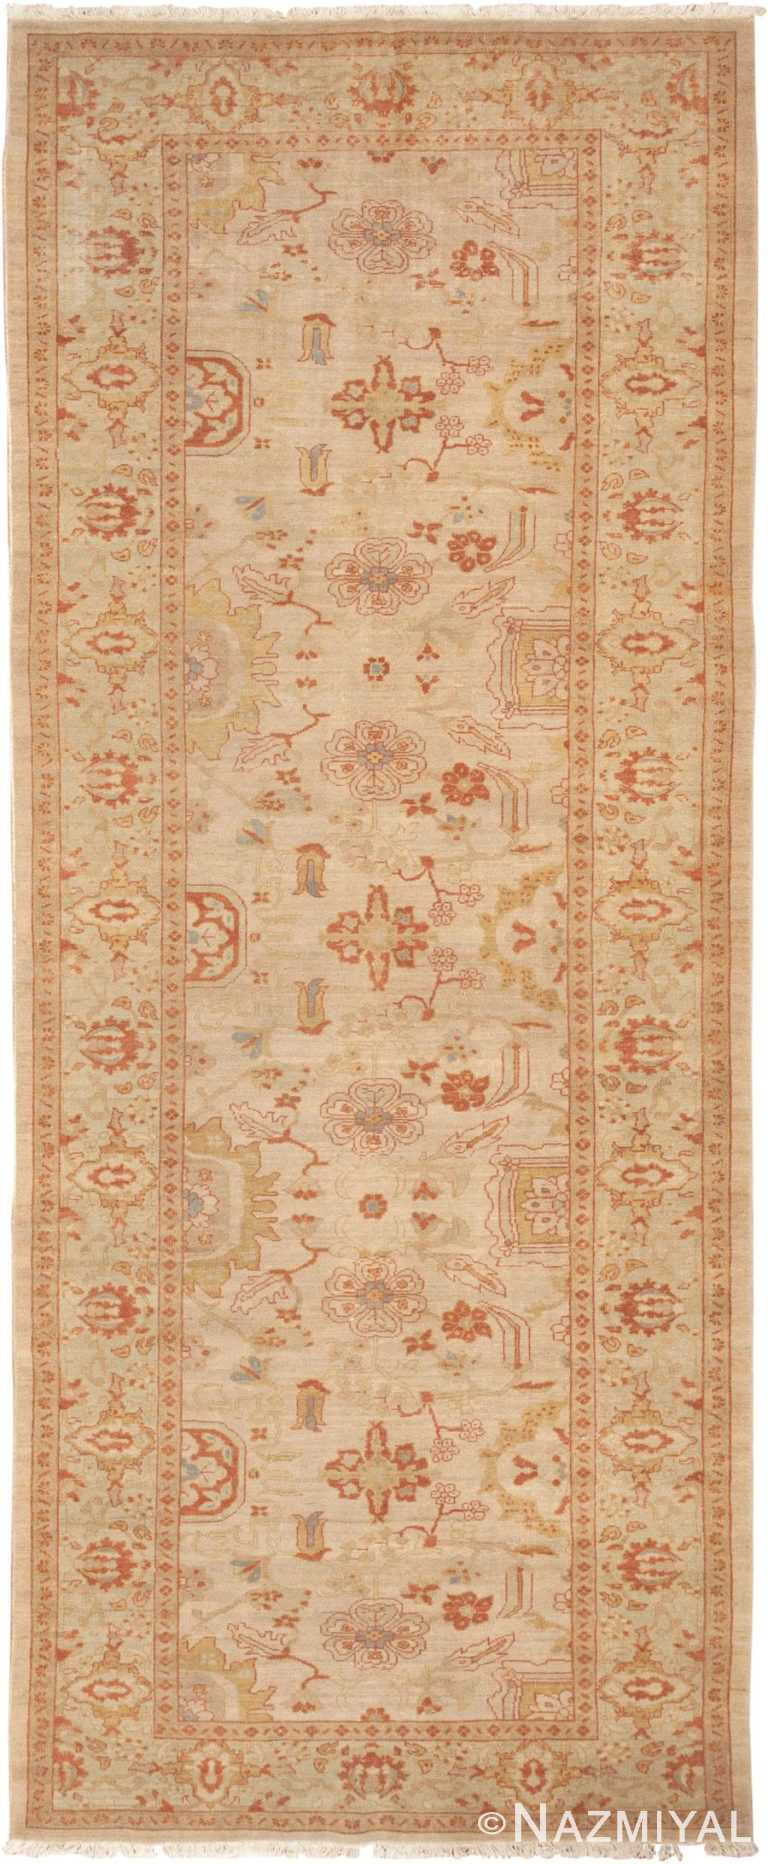 Gallery Size Decorative Vintage Persian Sultanabad Rug 41174 by Nazmiyal Antique Rugs